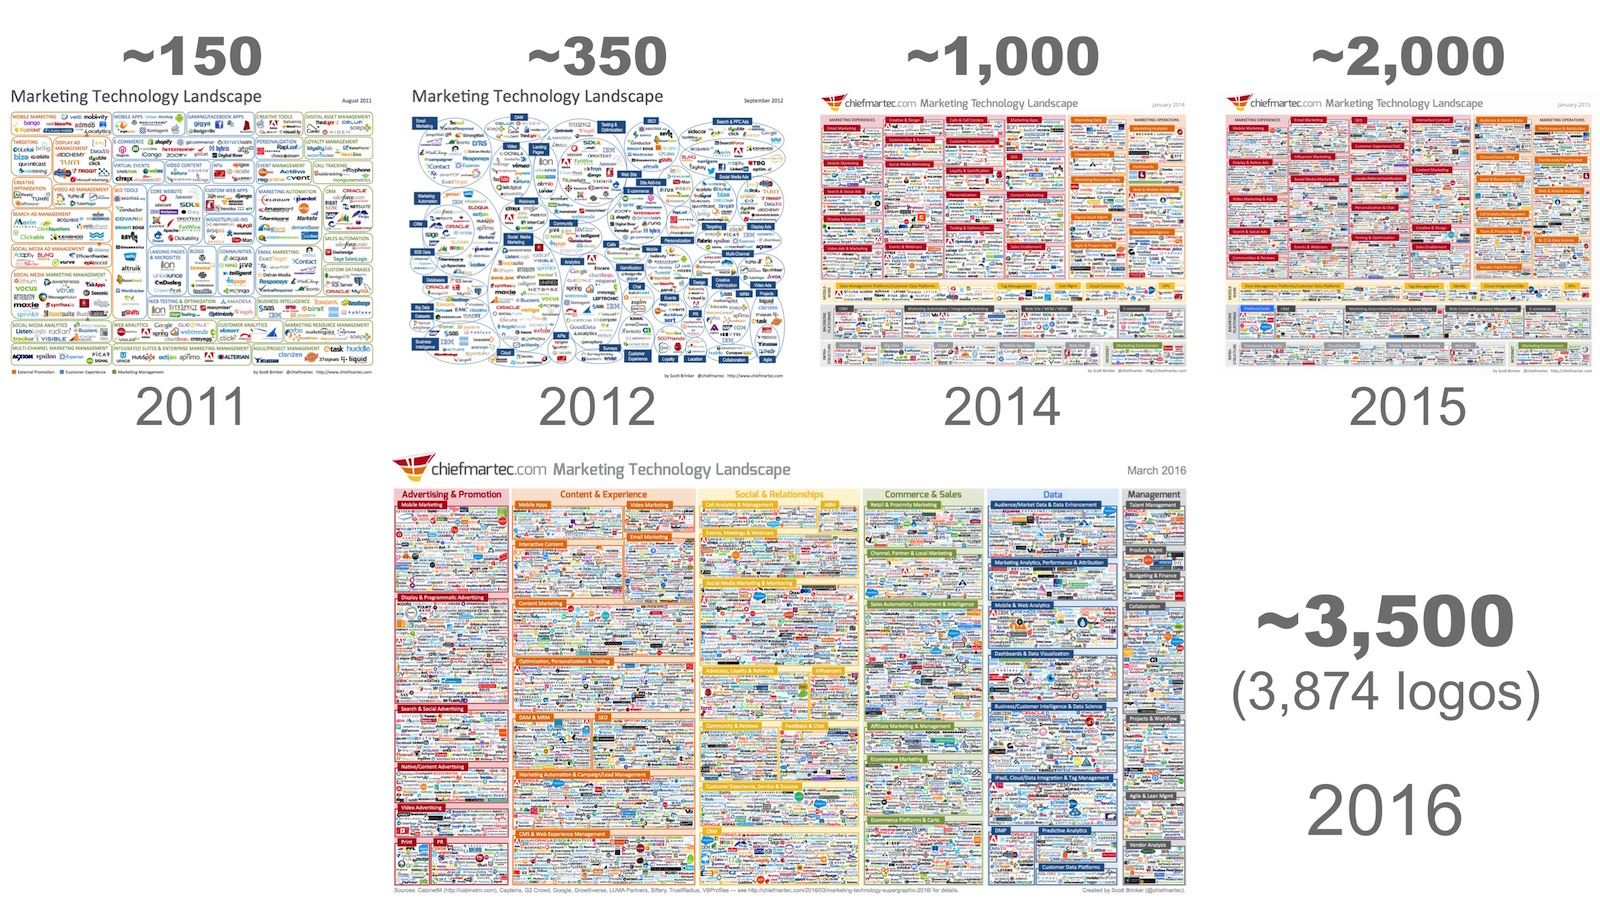 marketing technology landscape timeline 2011 through 2016